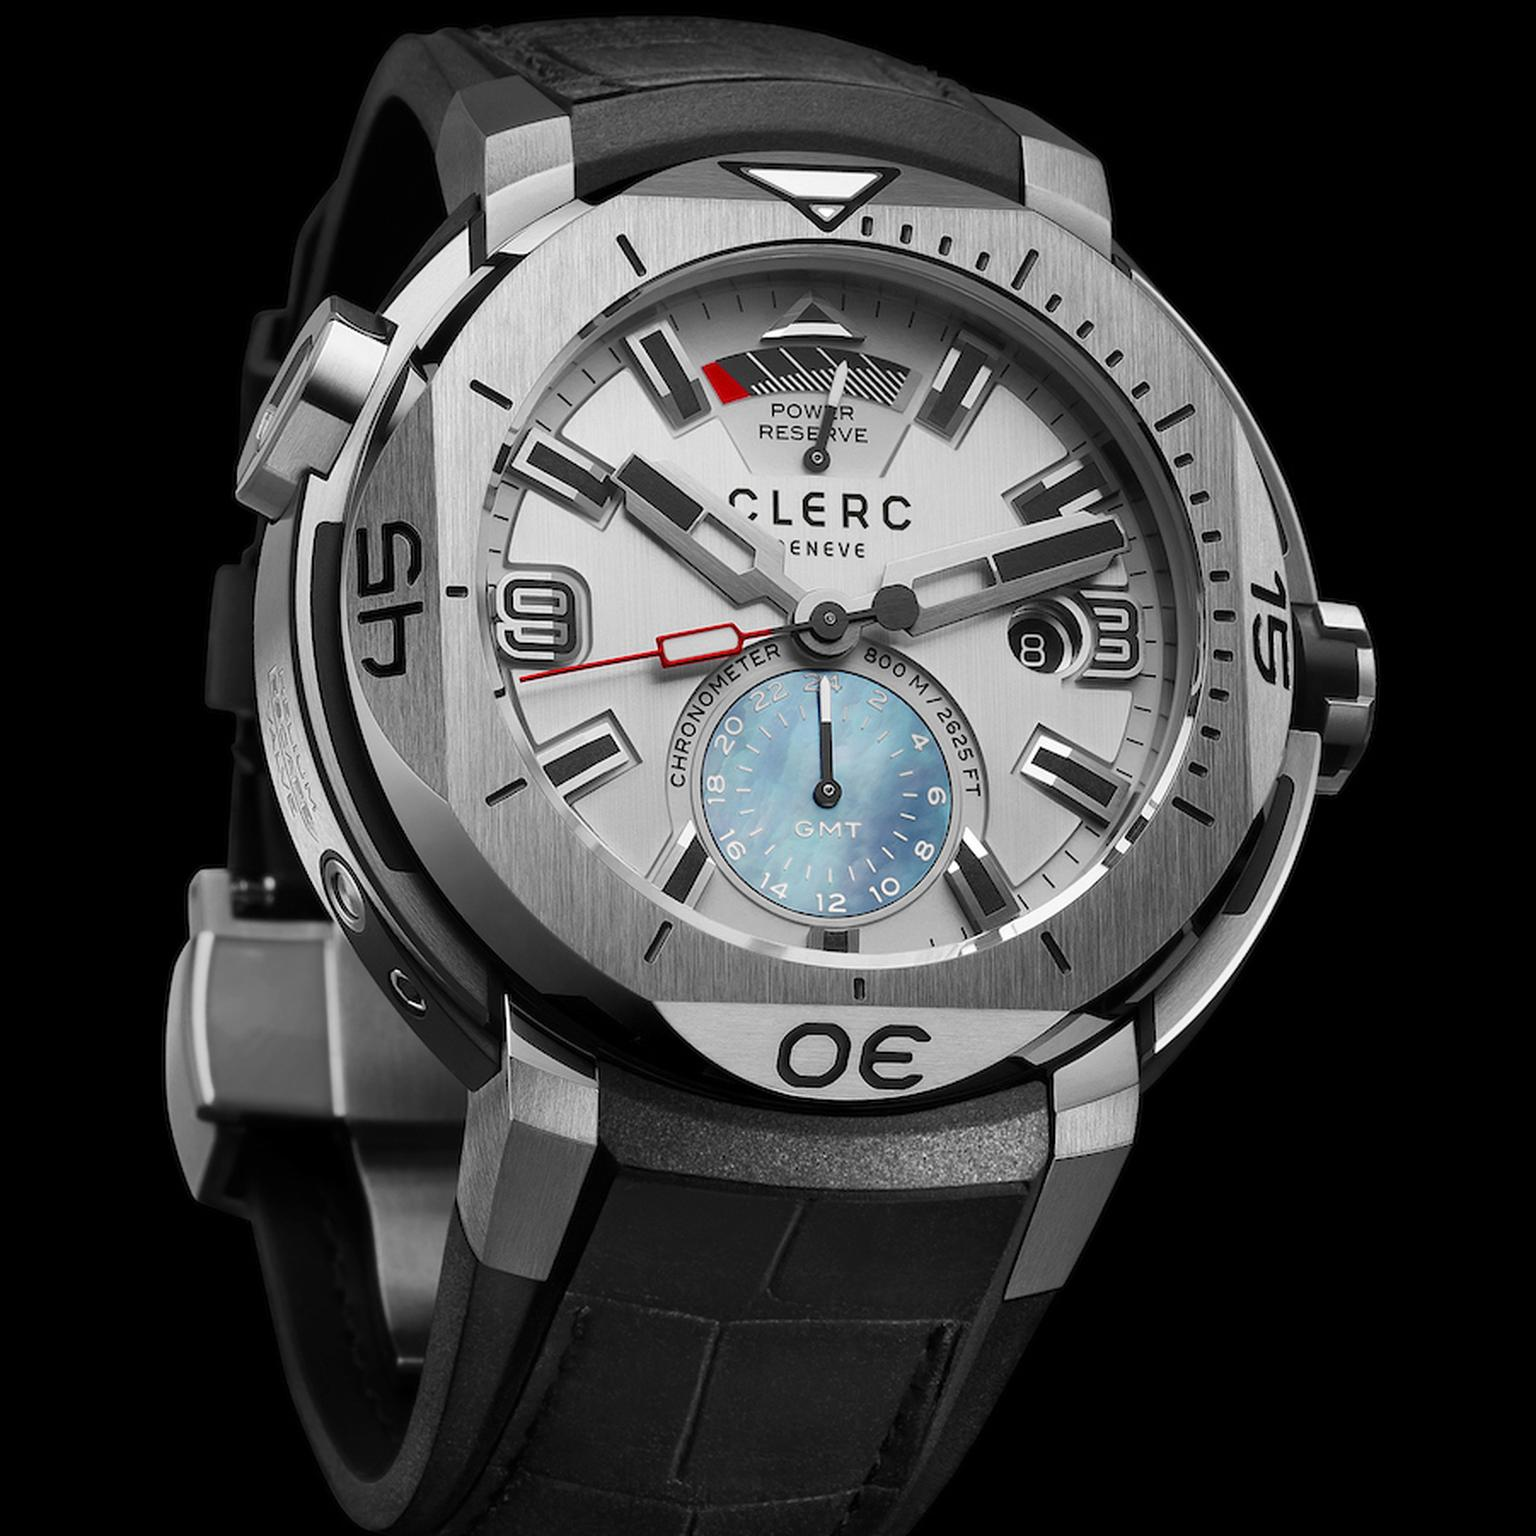 Clerc GMT Hydroscaph watch